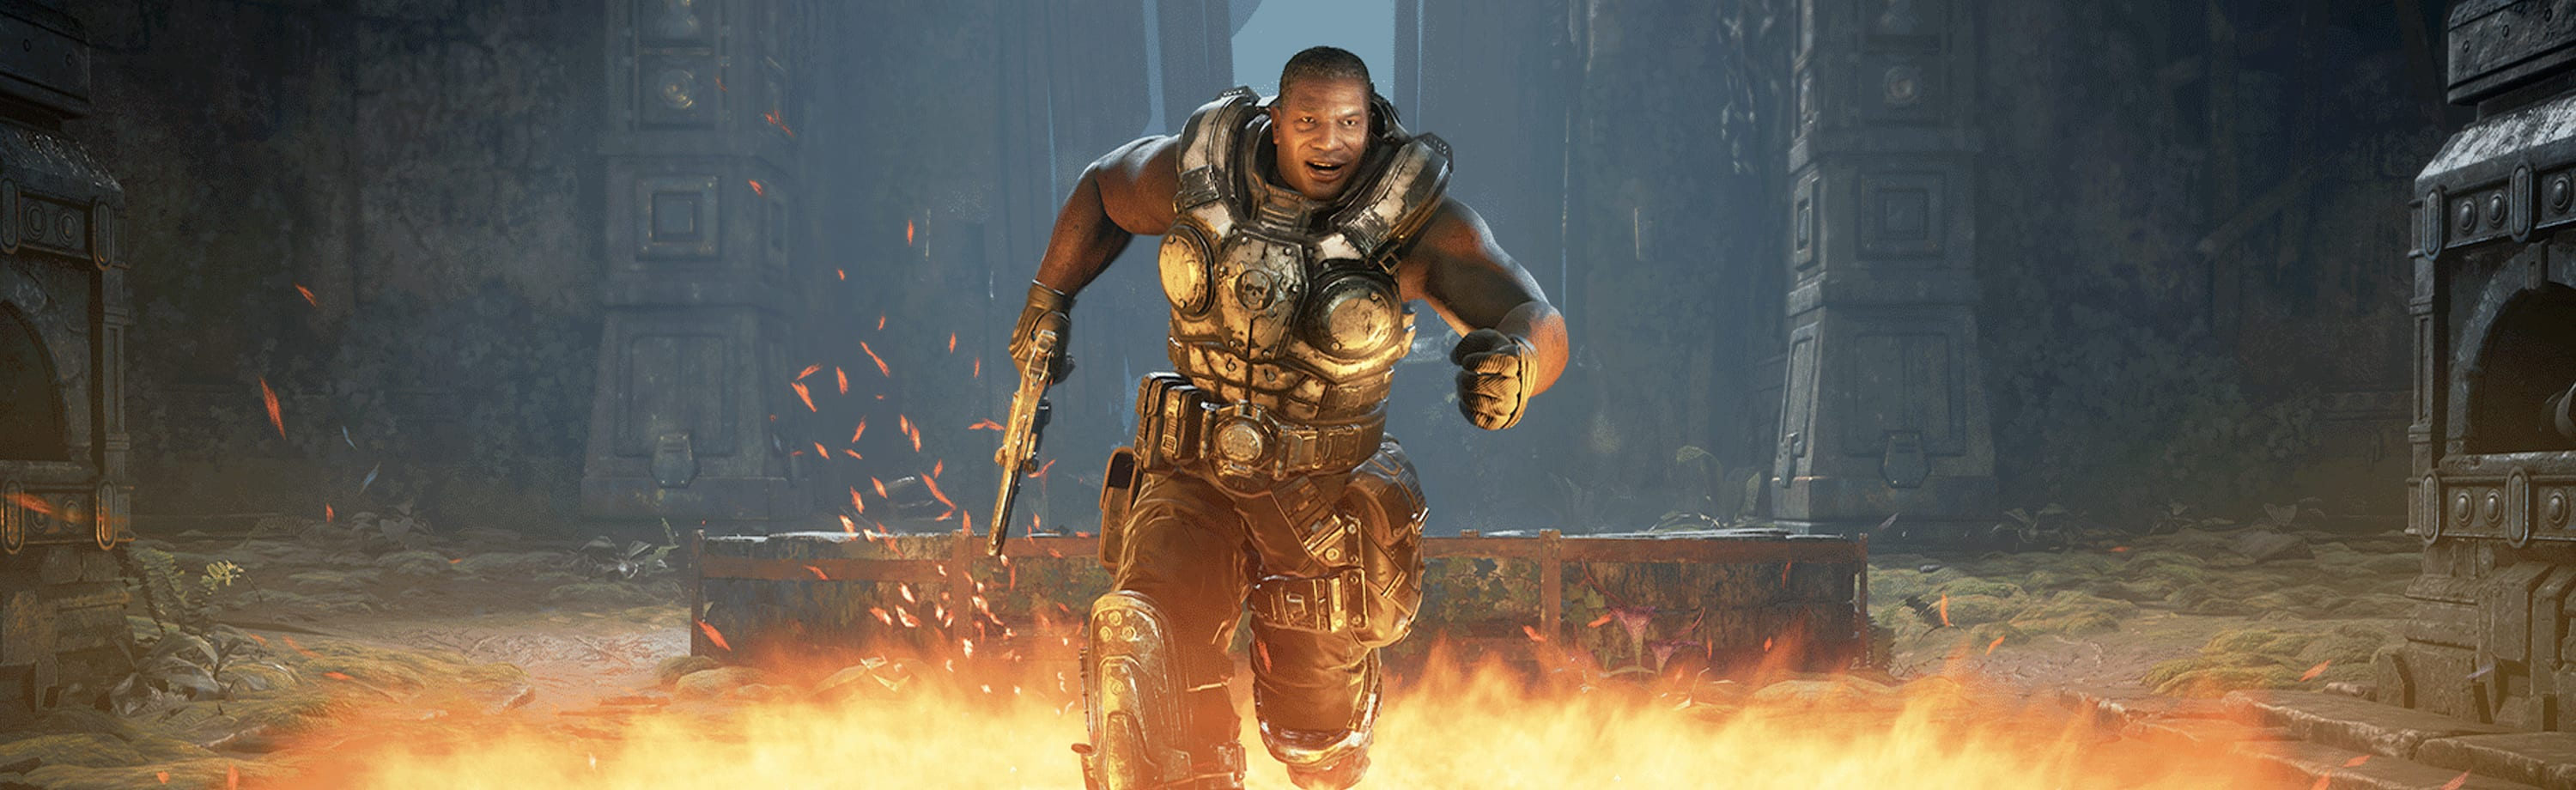 August Cole from Gears of War